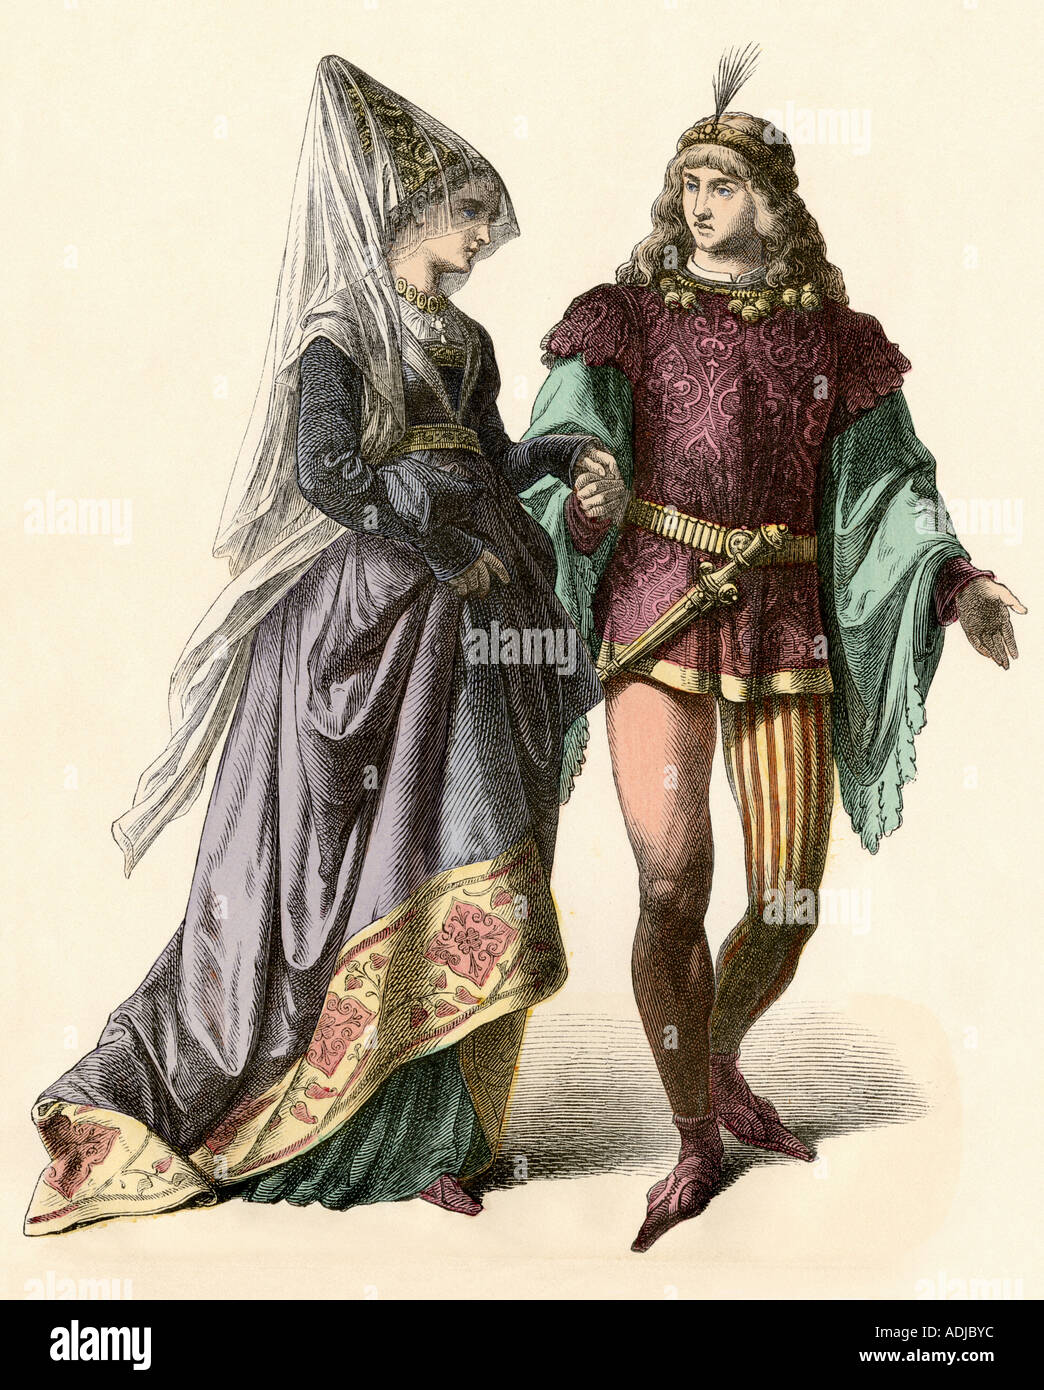 Medieval clothes and fashion 75